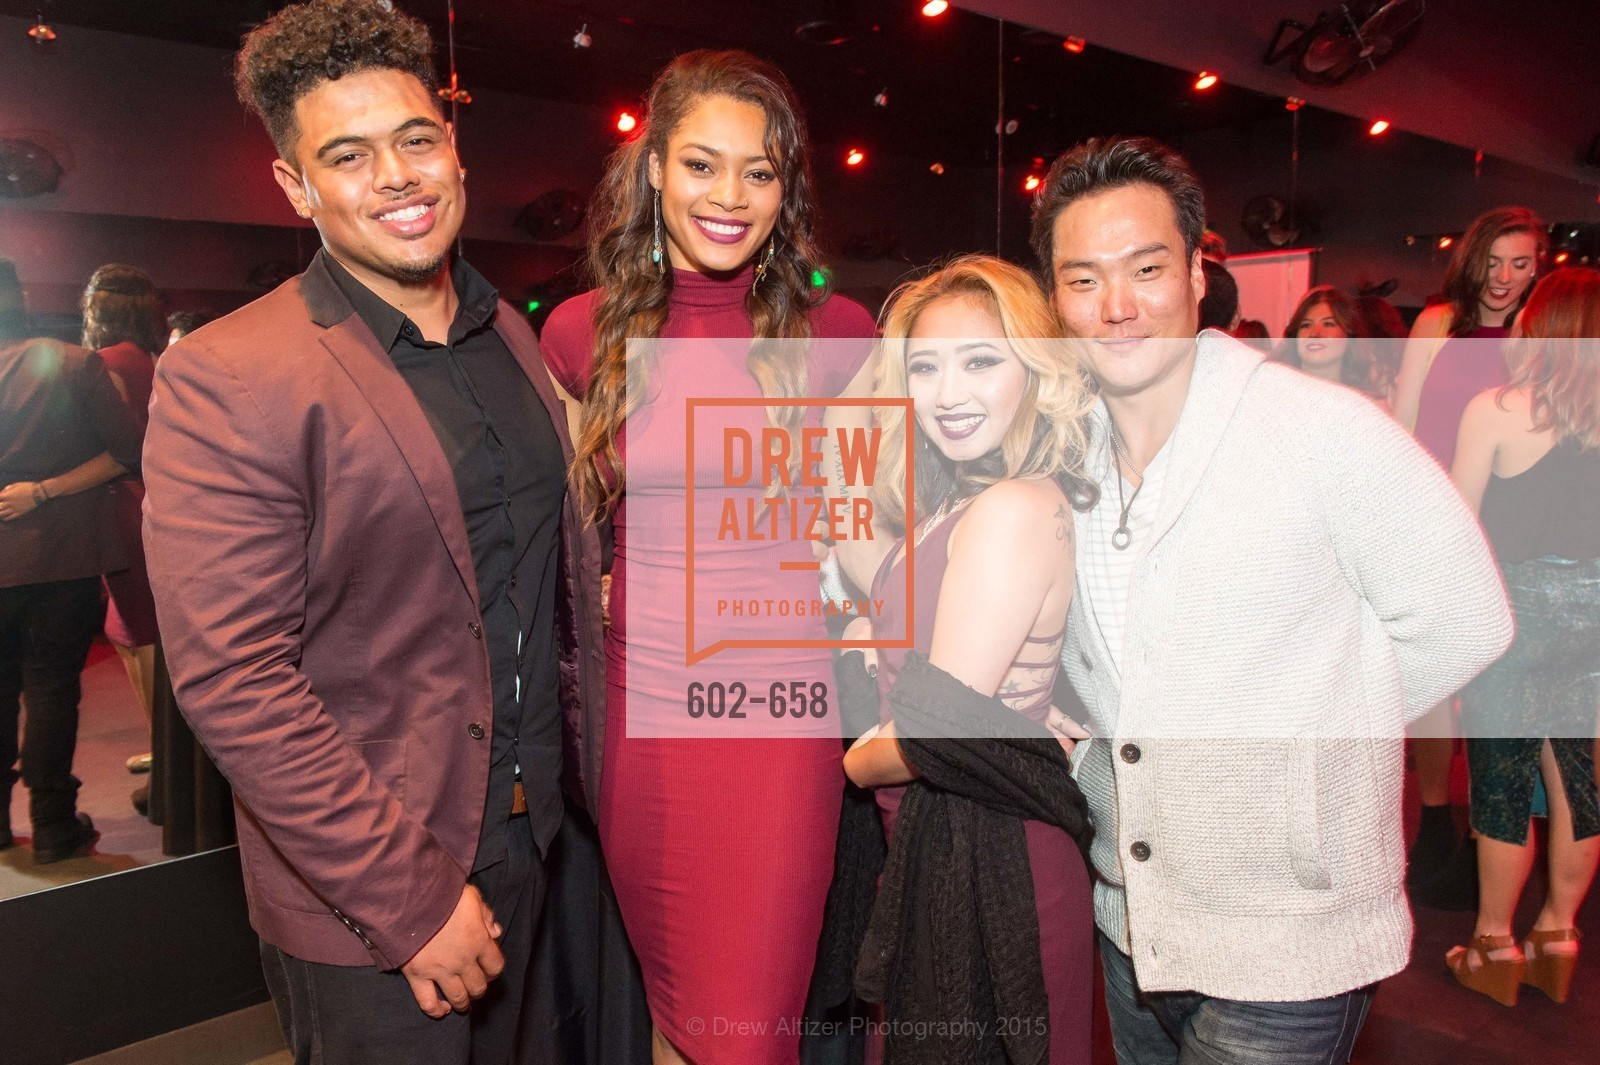 Roy Heare, Tashay Wallace, Bonnie Willeet, Anthony Vogg, Barry's Marina Opening, Barry's. 2246 Lombard Street, December 17th, 2015,Drew Altizer, Drew Altizer Photography, full-service agency, private events, San Francisco photographer, photographer california